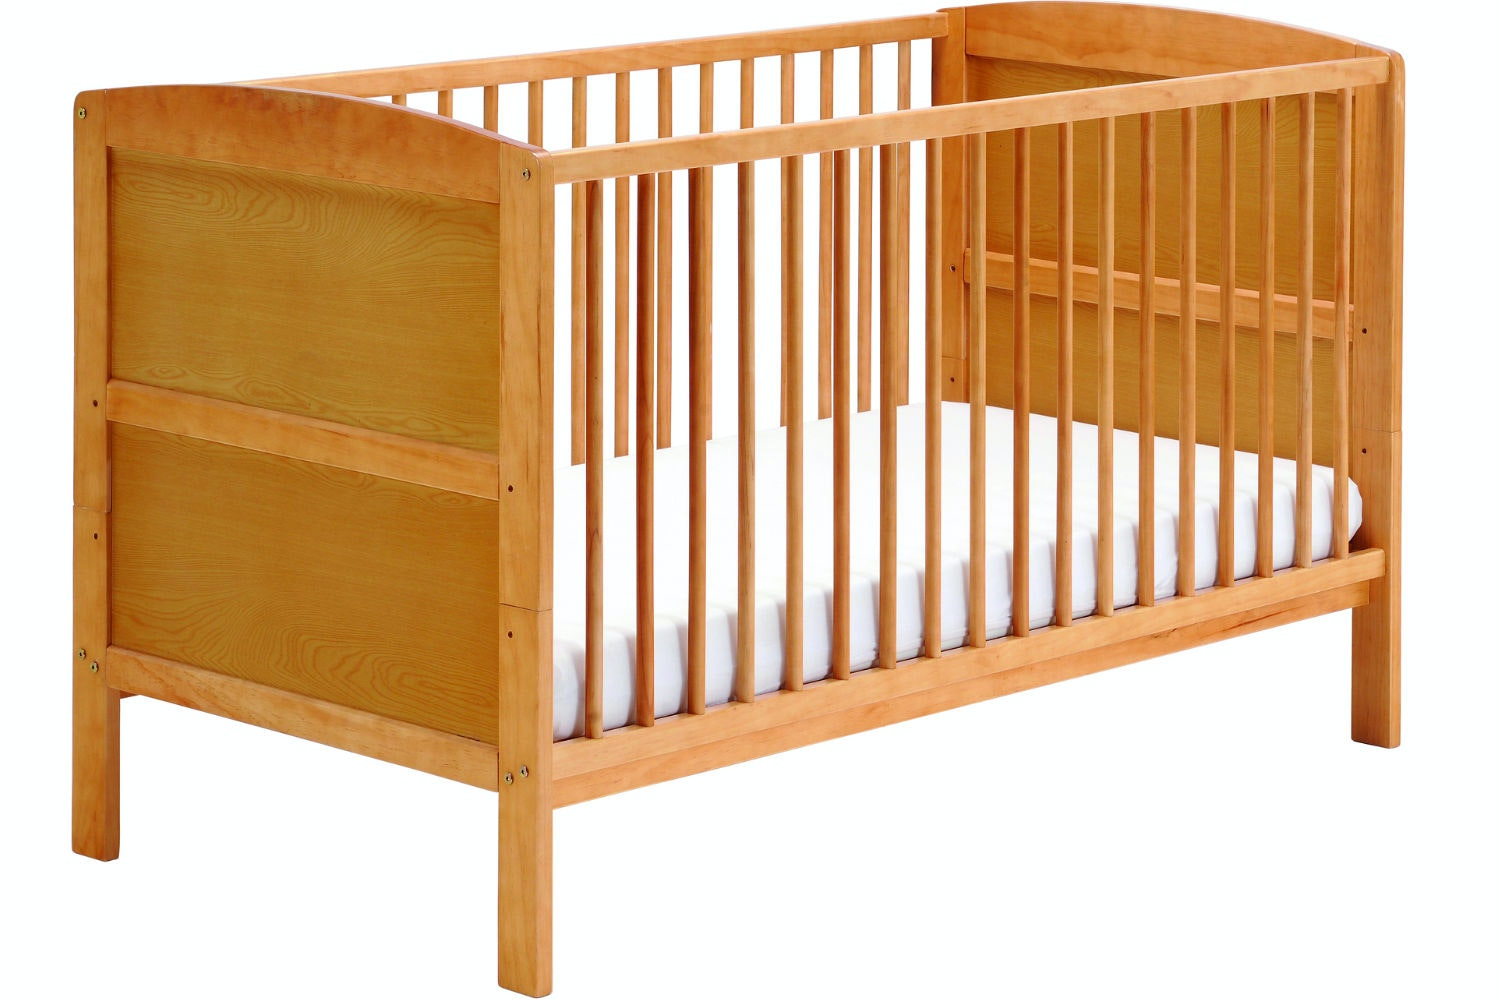 Hudson Cot Bed | Antique Pine